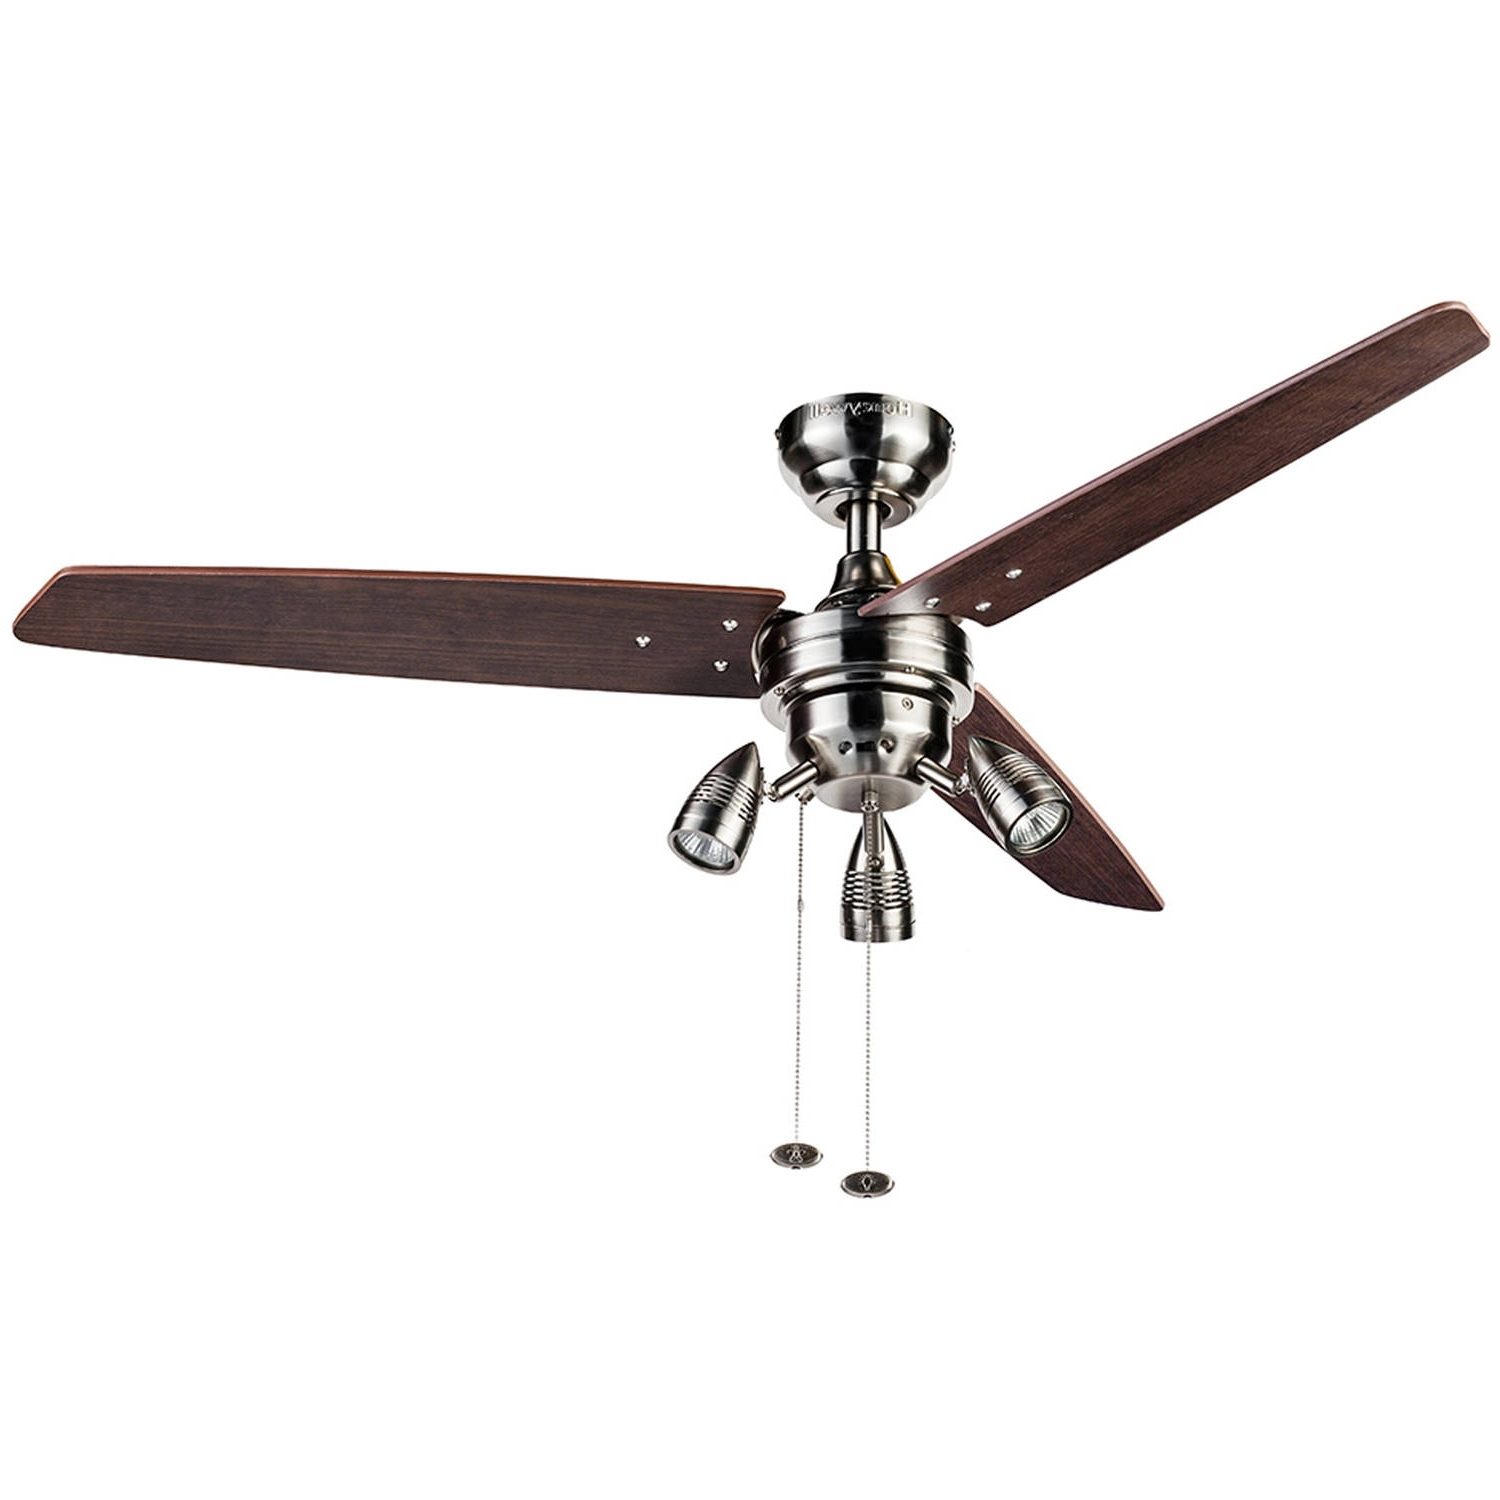 "Outdoor Ceiling Fans At Walmart With Regard To Widely Used 42"" Mainstays Hugger Indoor Ceiling Fan With Light, White – Walmart (Gallery 4 of 20)"